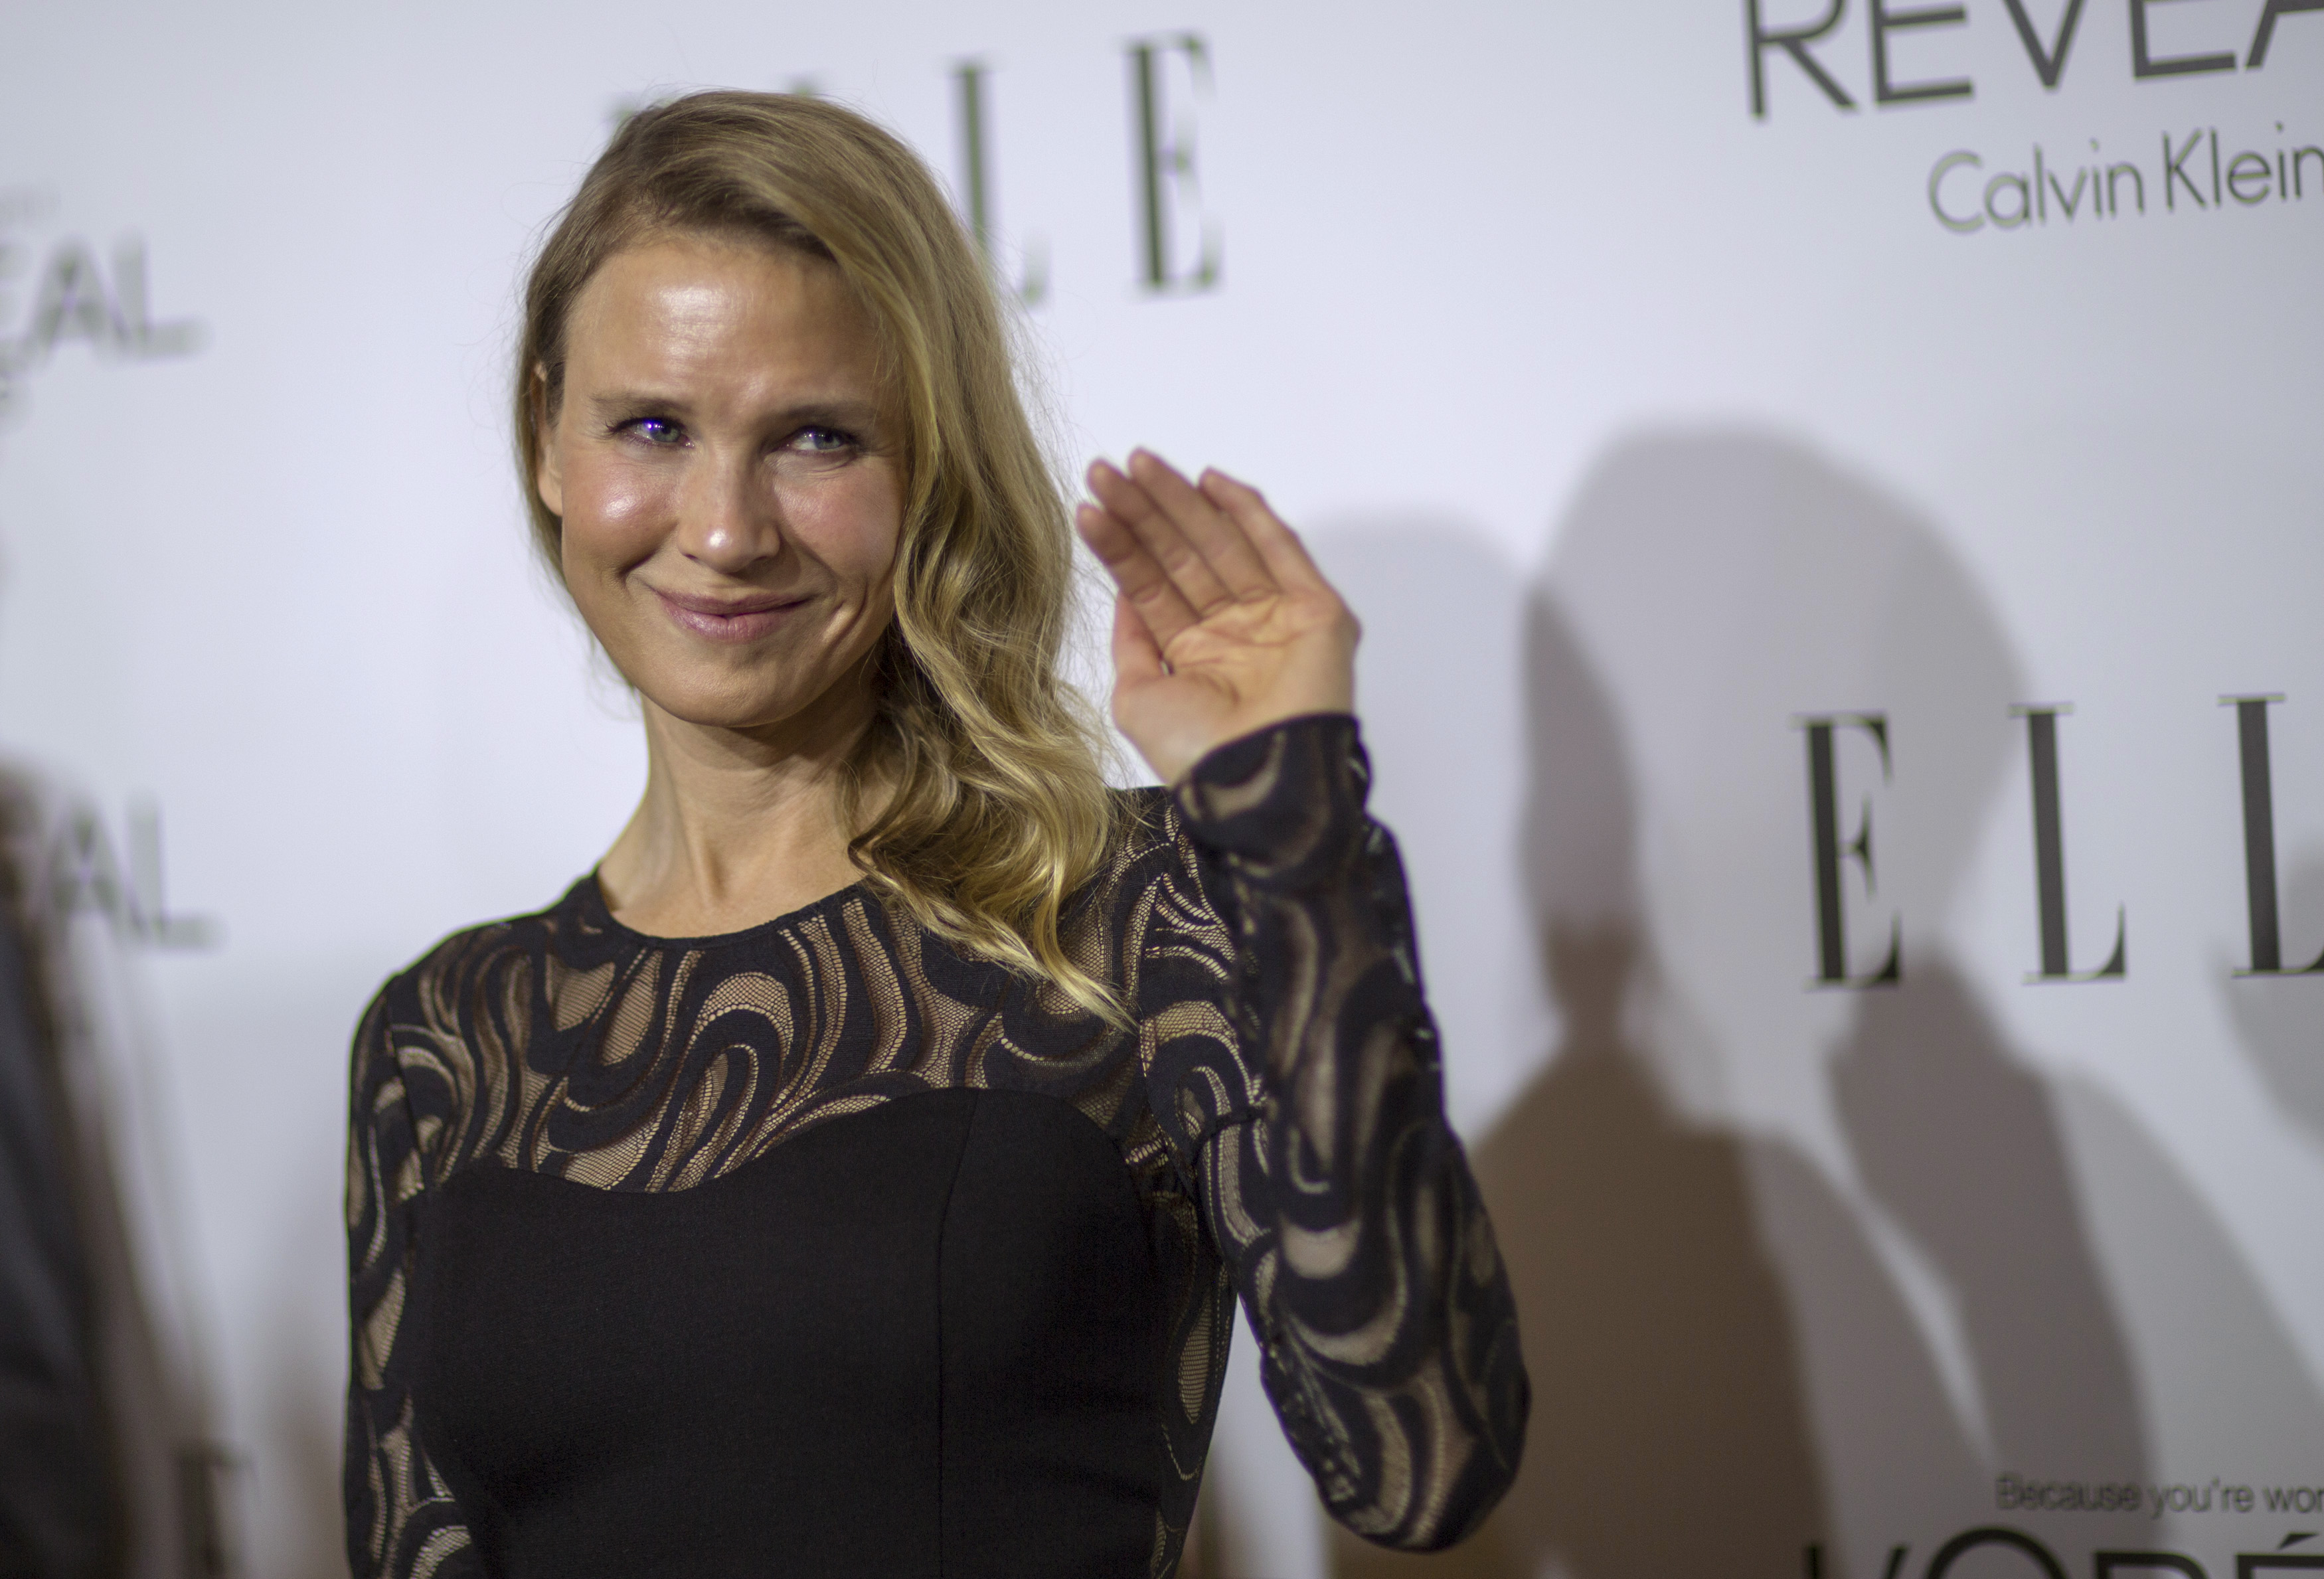 Actress Renee Zellweger waves at the 21st annual ELLE Women in Hollywood Awards in Los Angeles, California, U.S. on October 20, 2014.  REUTERS/Mario Anzuoni/File Photo - RTSL98I